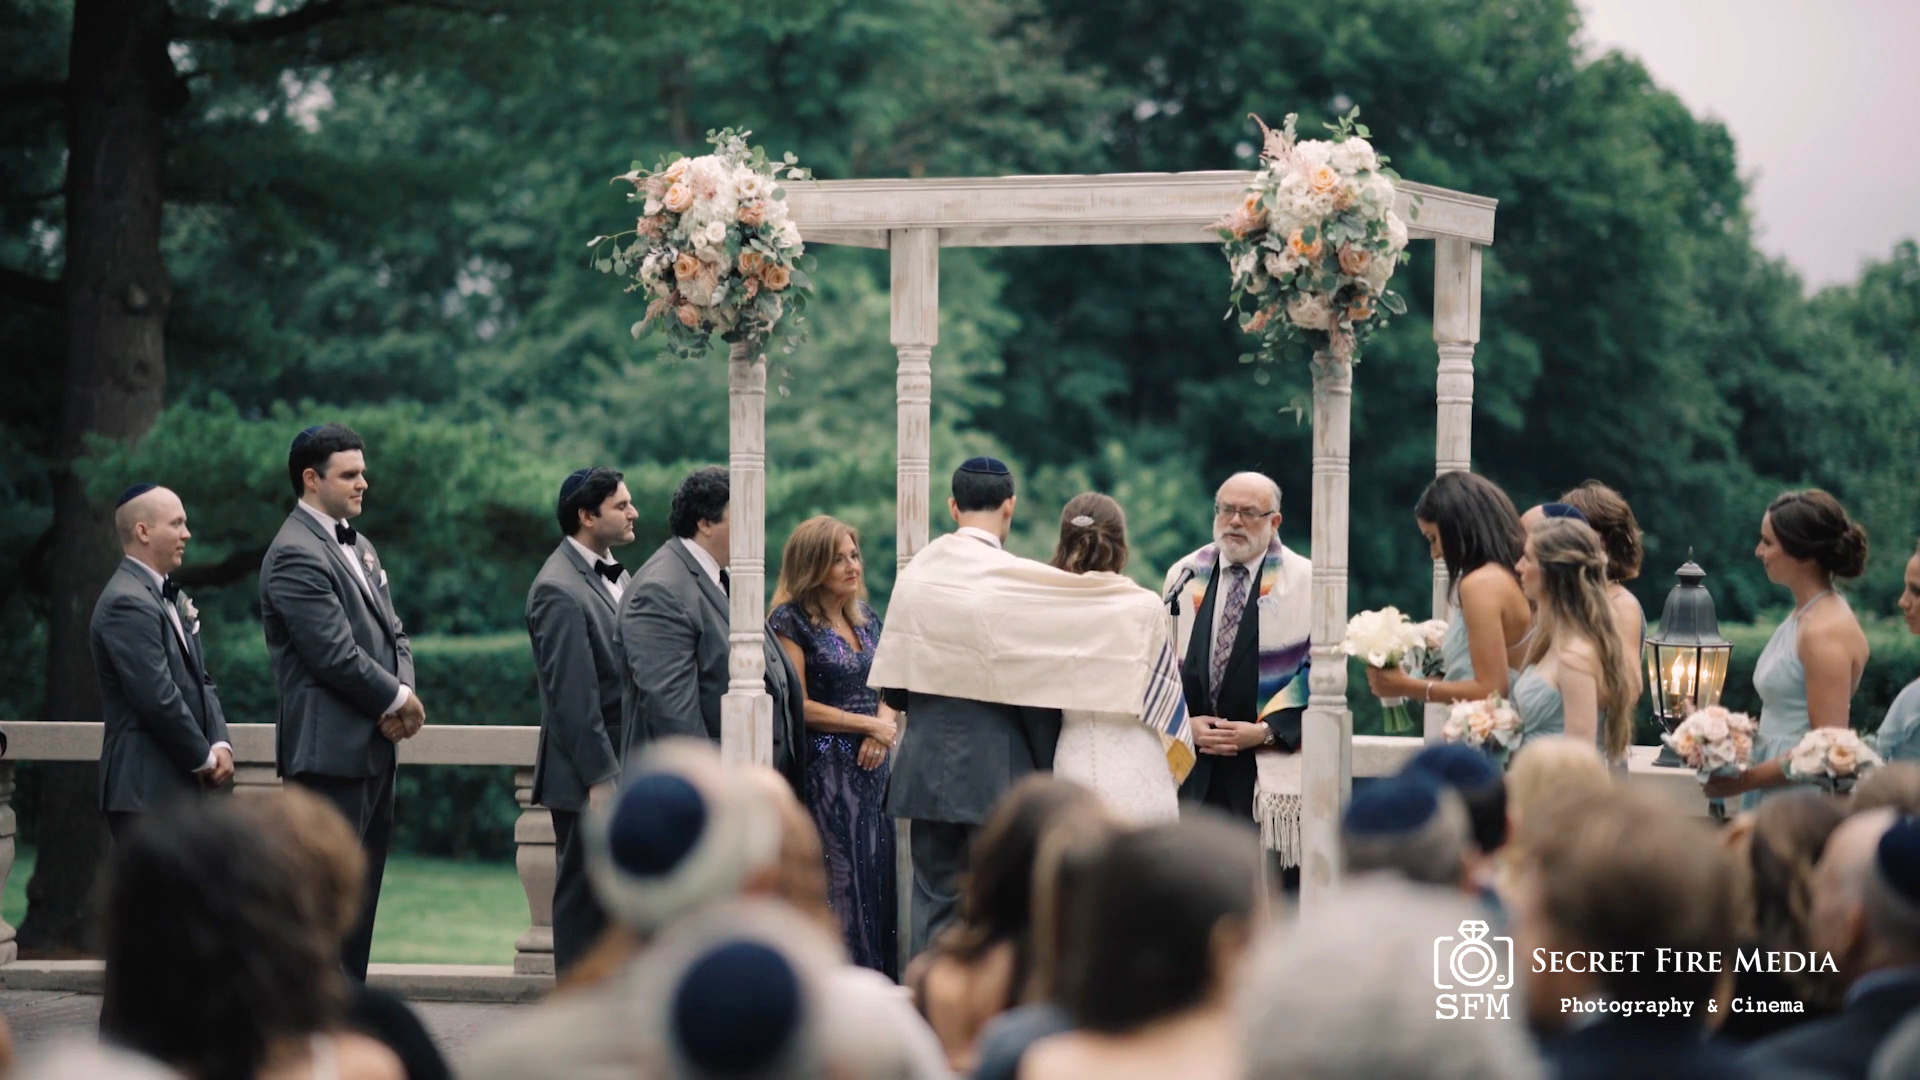 Rachel and Andrews Hudson Valley Wedding Video At Tappen Hill in Tarrytown New York